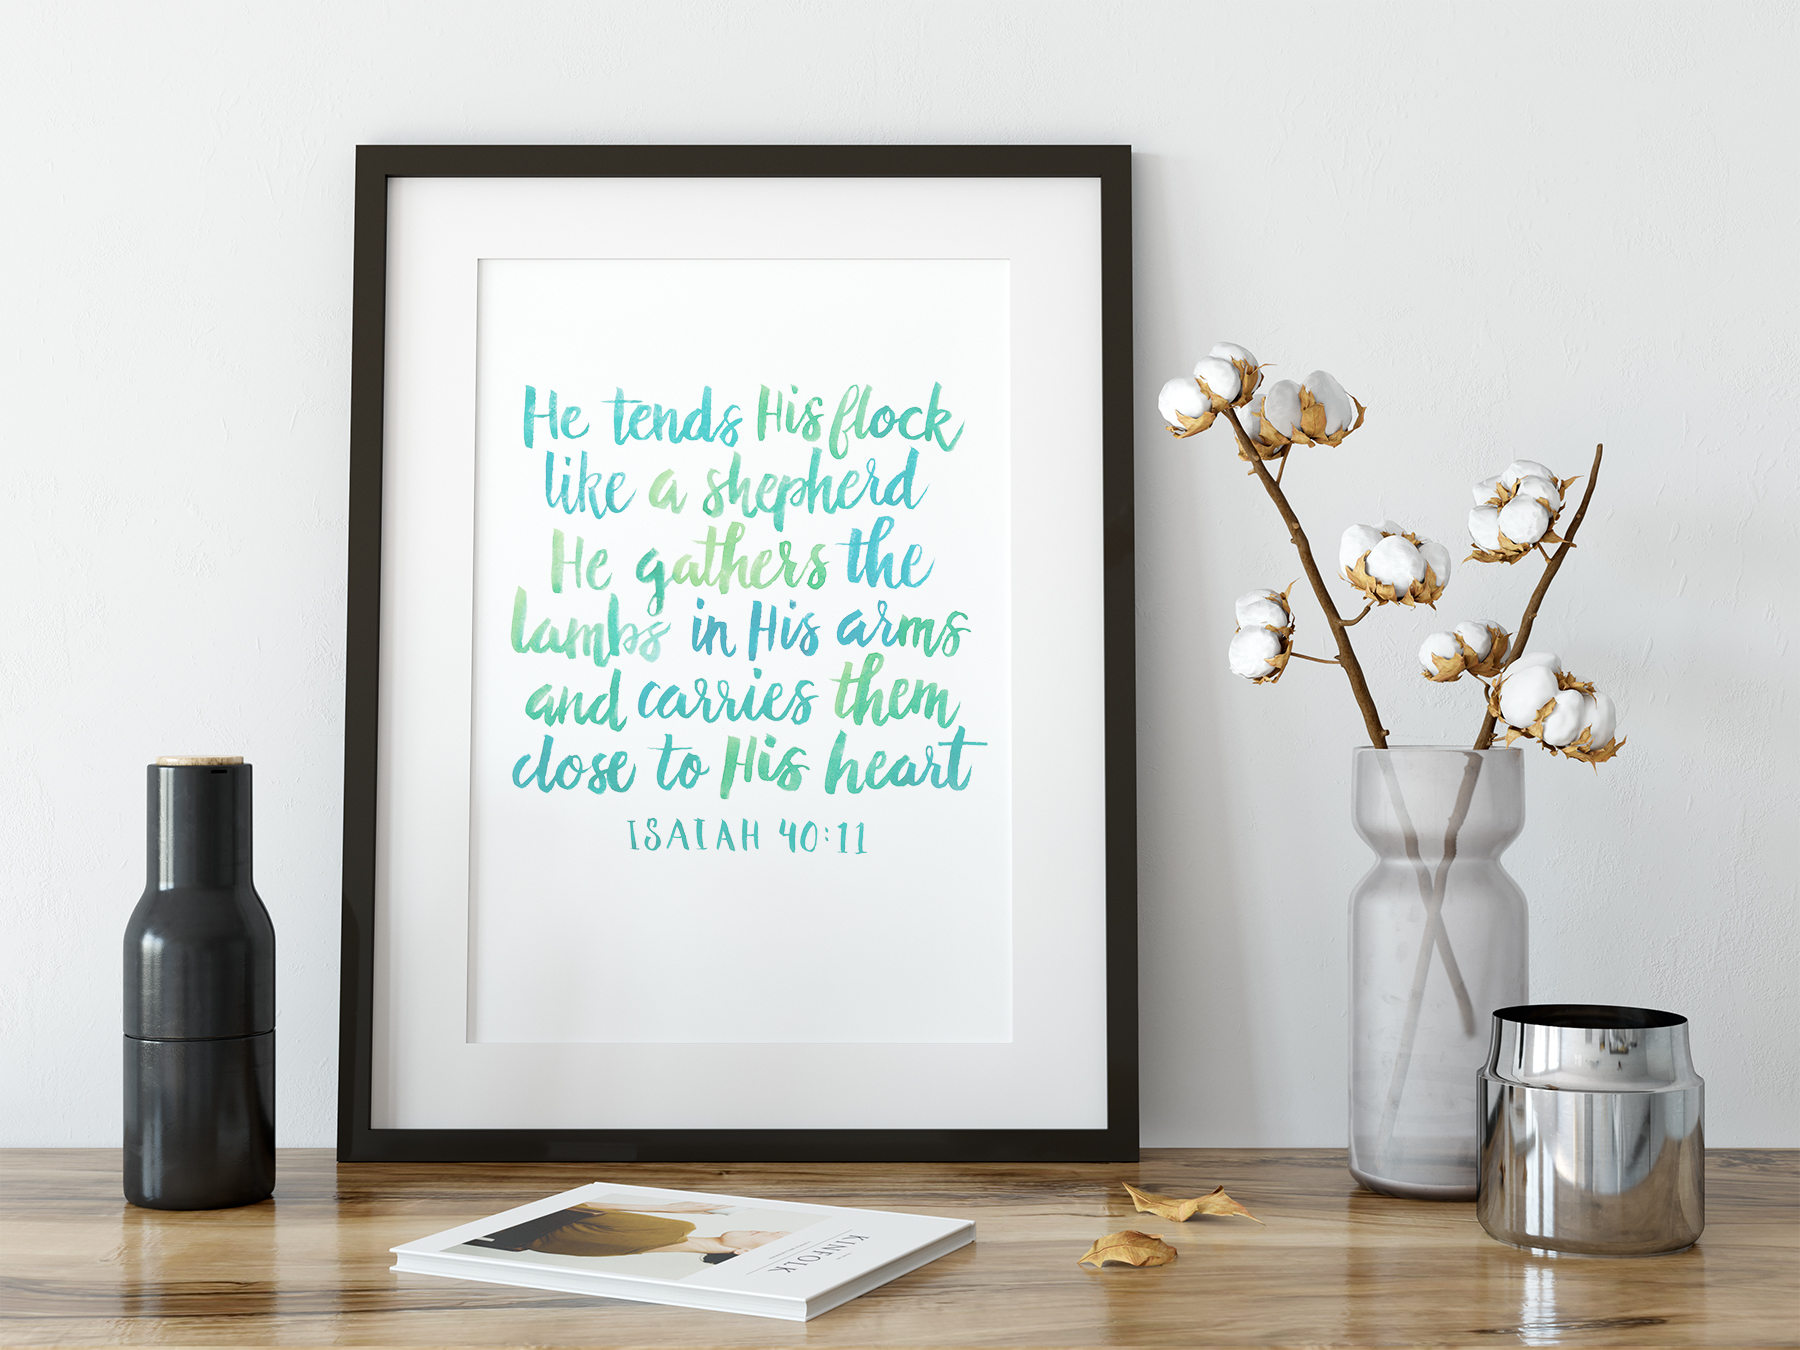 picture relating to Printable Wisdom named Bible Verse Artwork, Scripture Print, Watercolor Lettering, Printable Knowledge, Isaiah 40:11, Encouragement, He Tends His Flock Such as a Shephard - Contemporary Slice